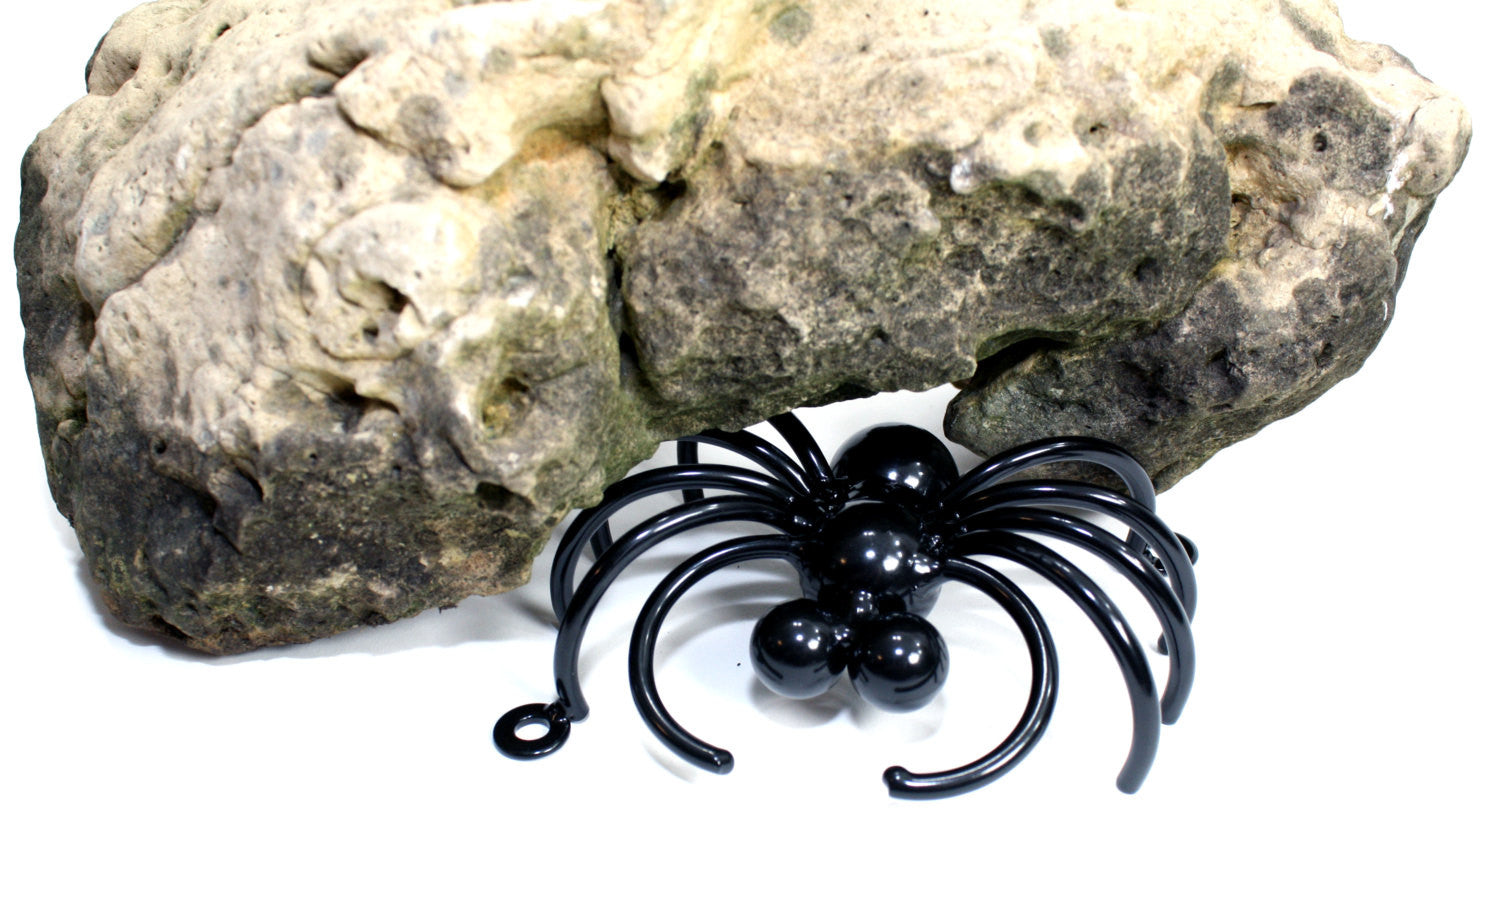 Wall-mounted Spider: Large Metal Spiders For Fences And Walls